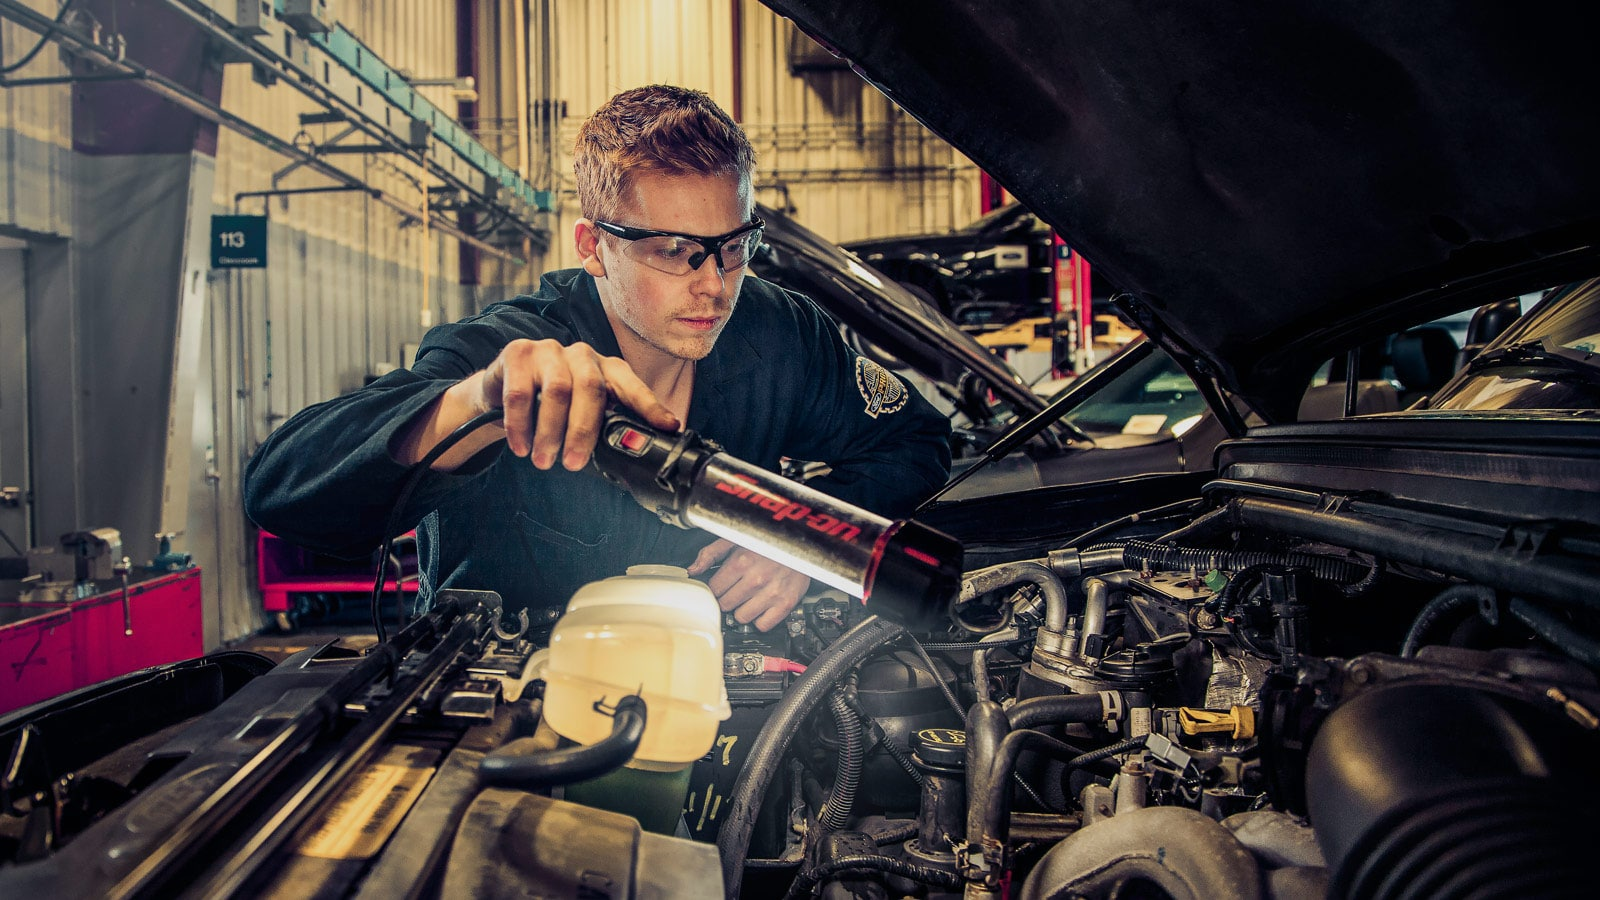 Quick entry into a career as an automotive service technician for Motor vehicle body repair